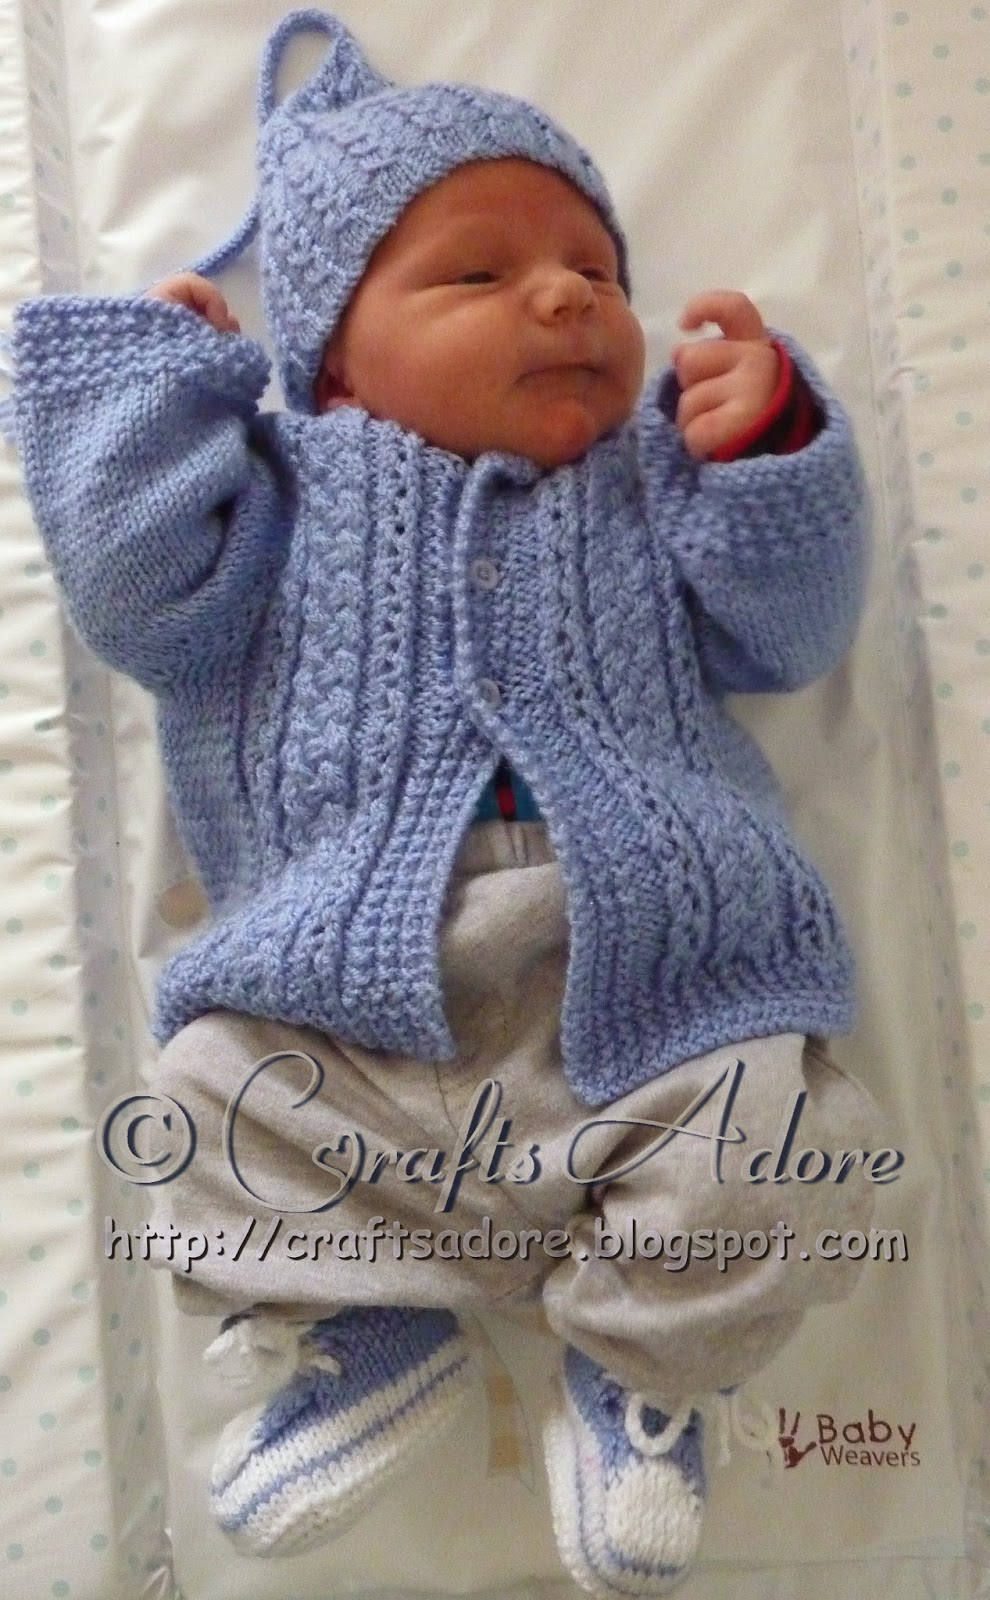 Knitting Pattern Baby Cardigan Free : CraftsAdore: